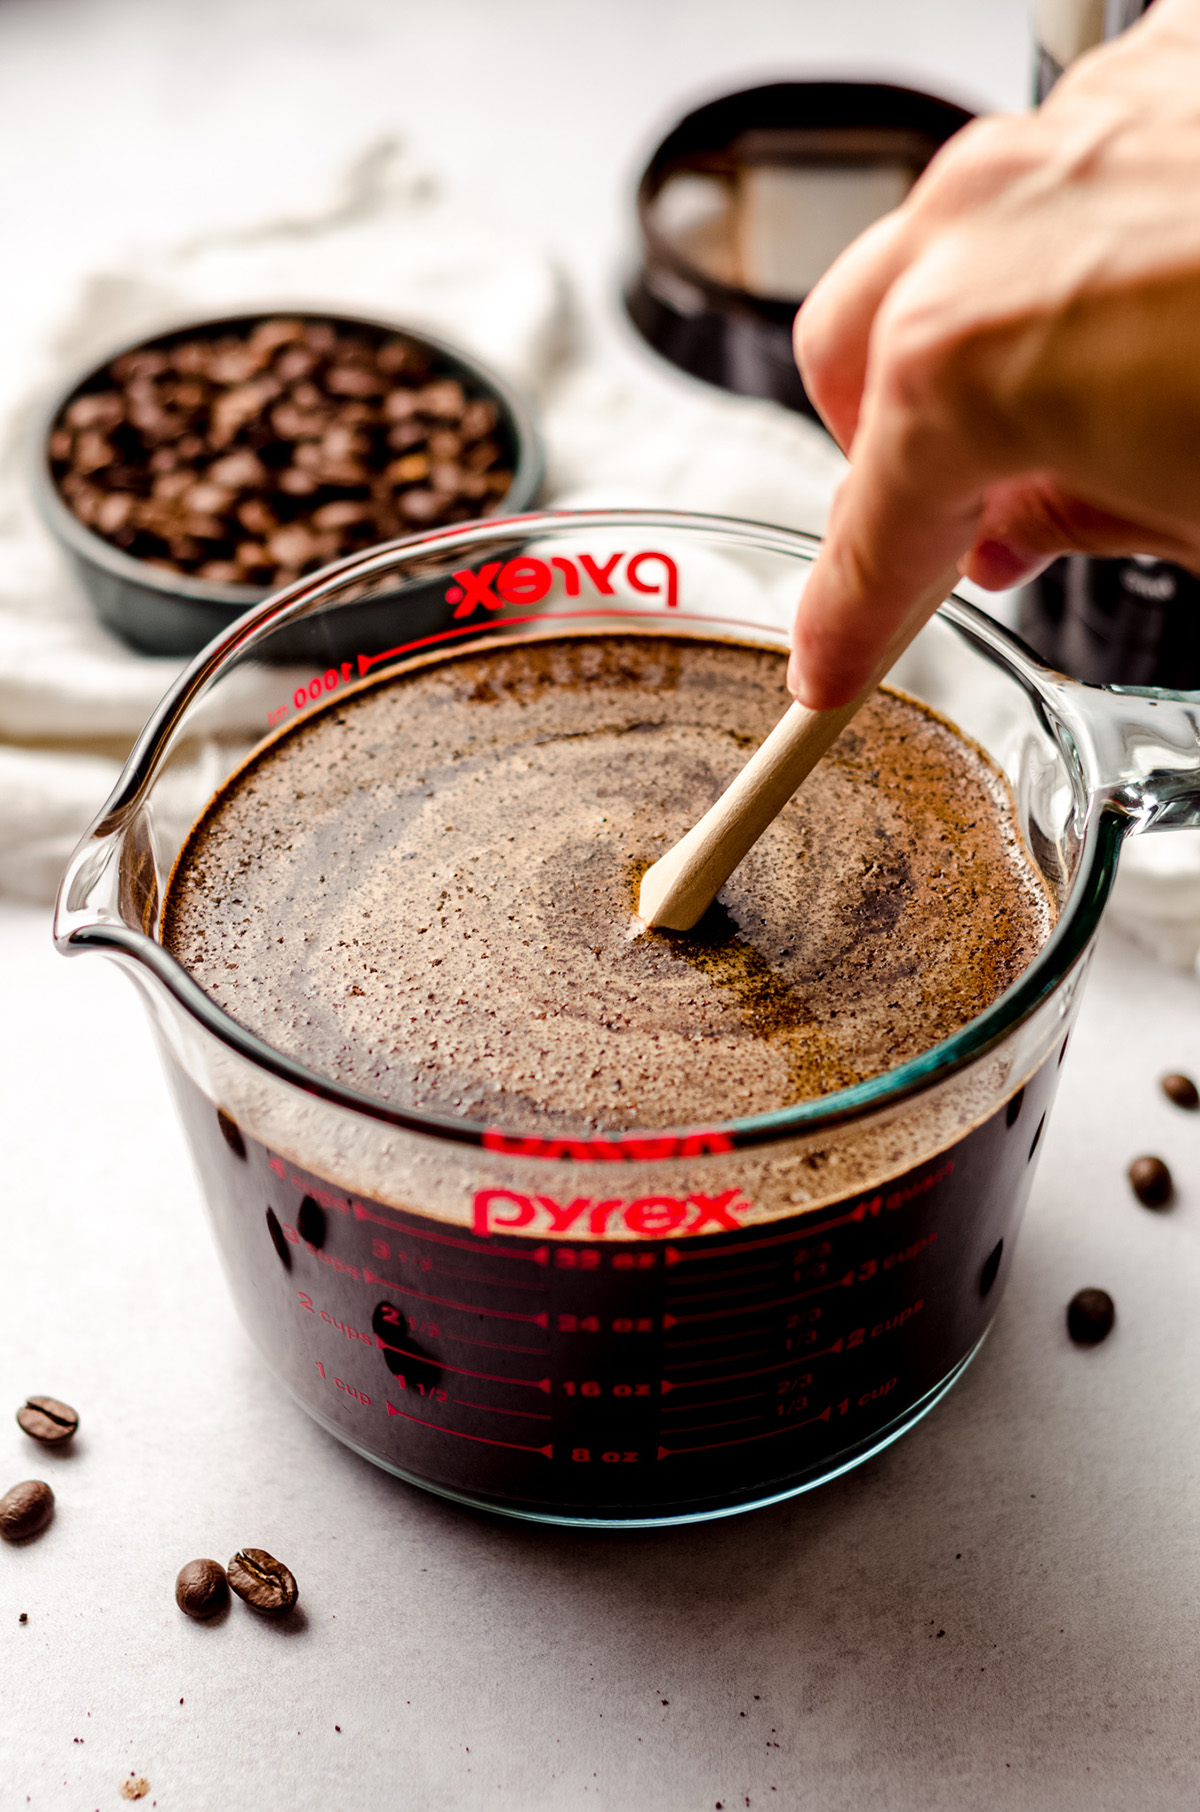 stirring soaked coffee grounds in a glass measuring cup